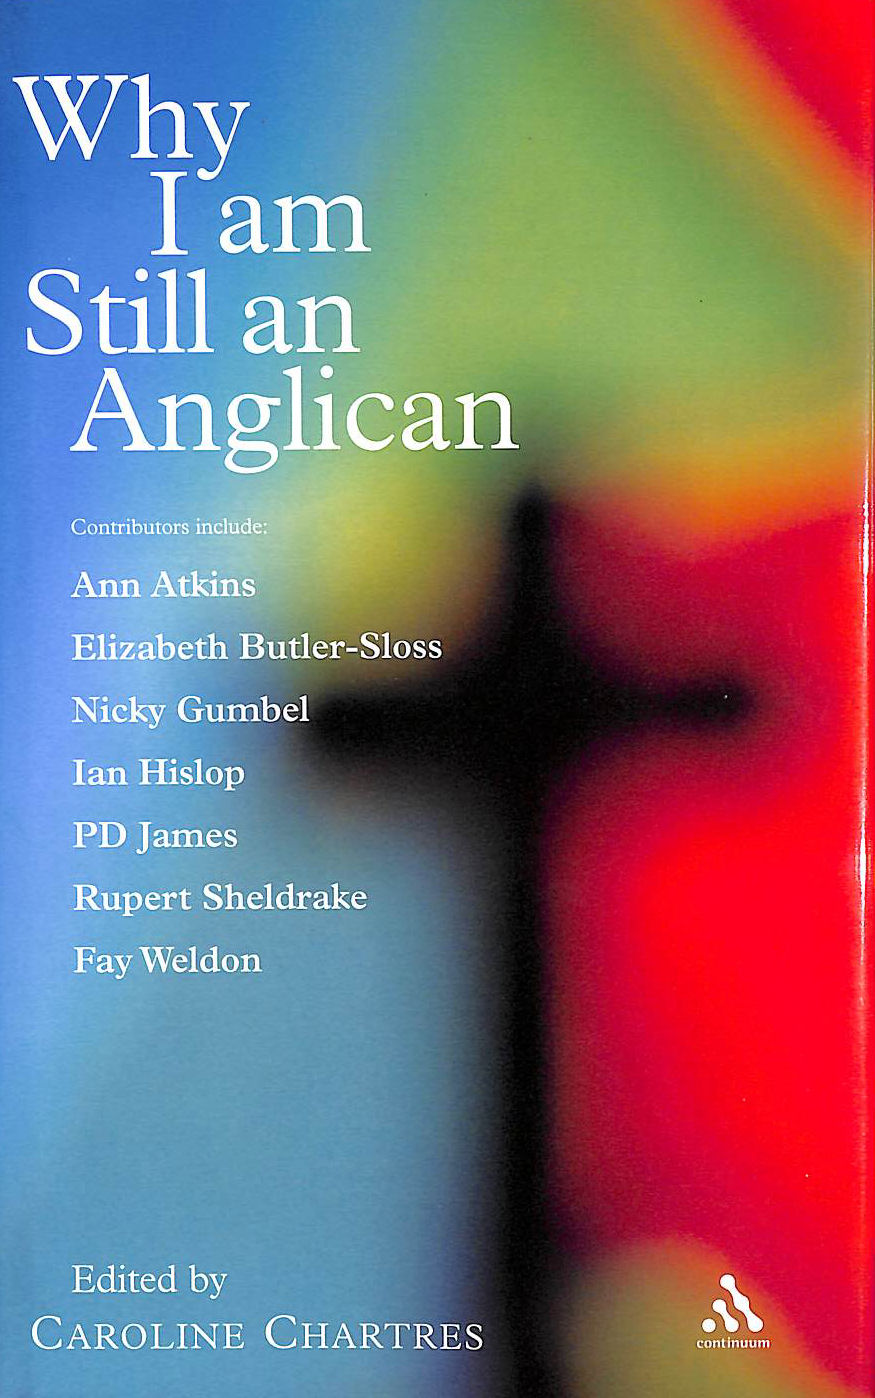 Image for Why I am Still an Anglican